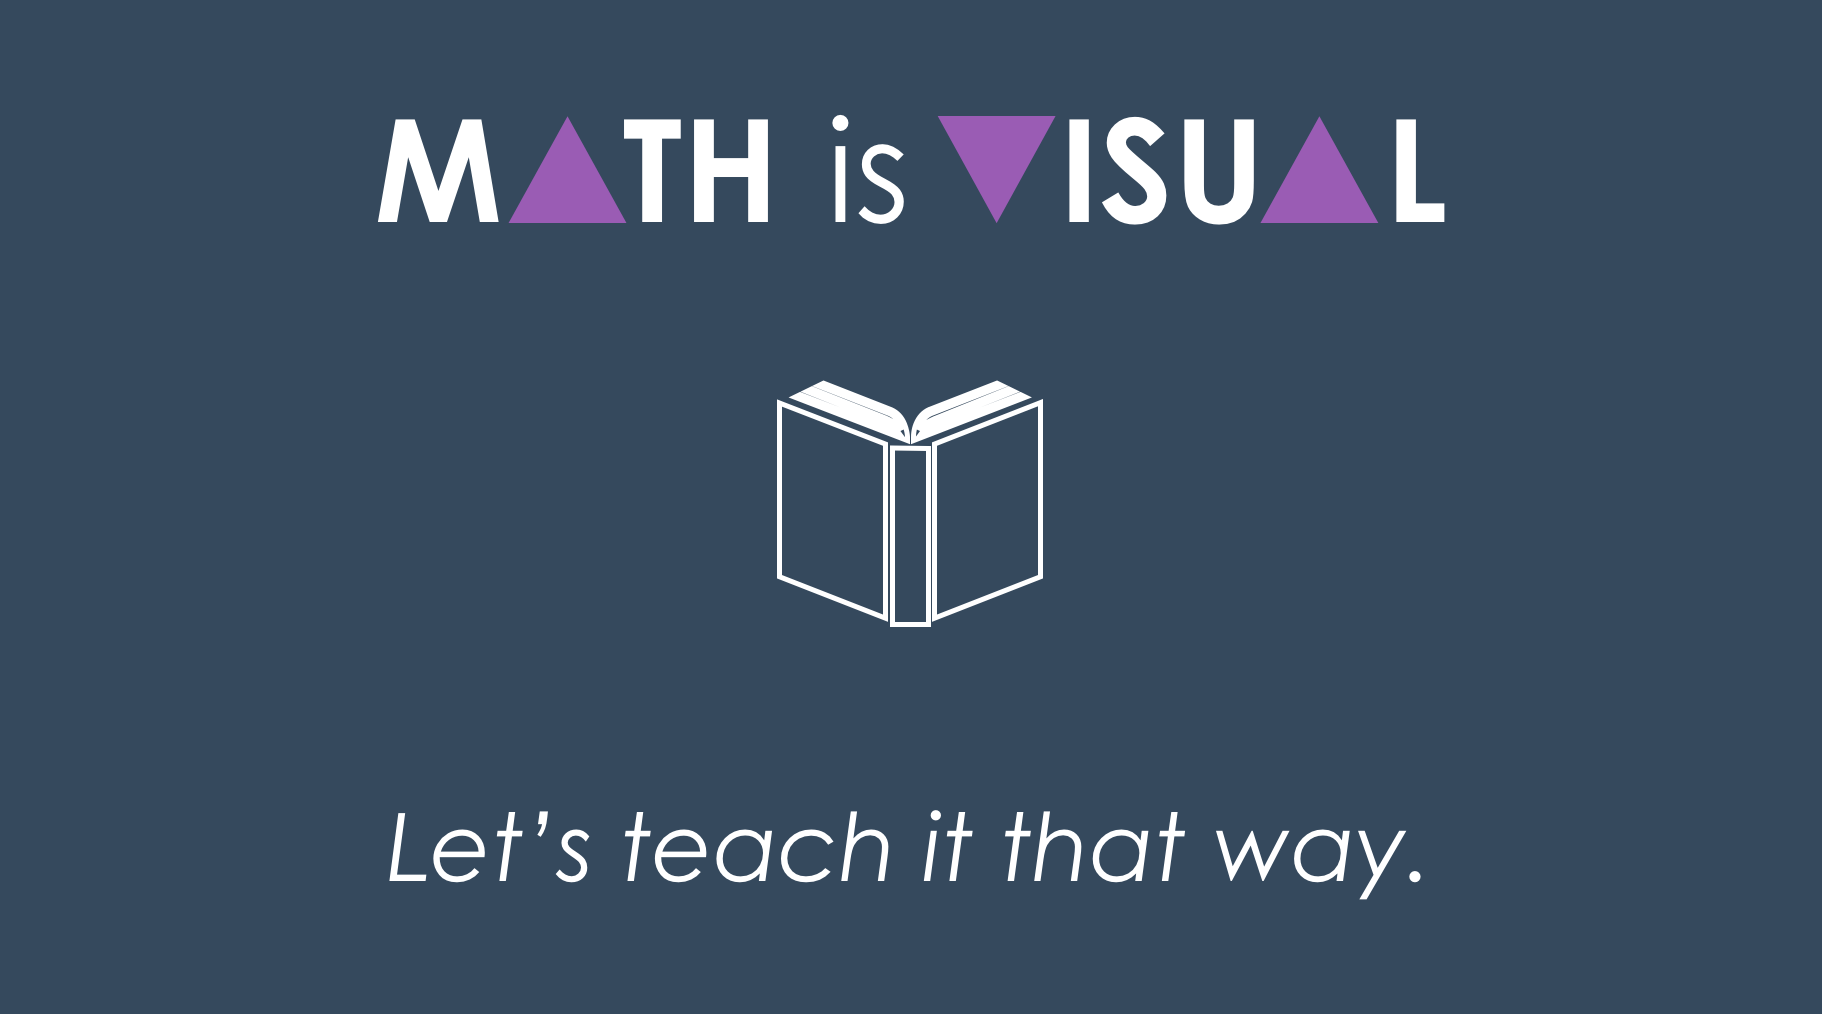 Math is visual- Let's teach it in that way